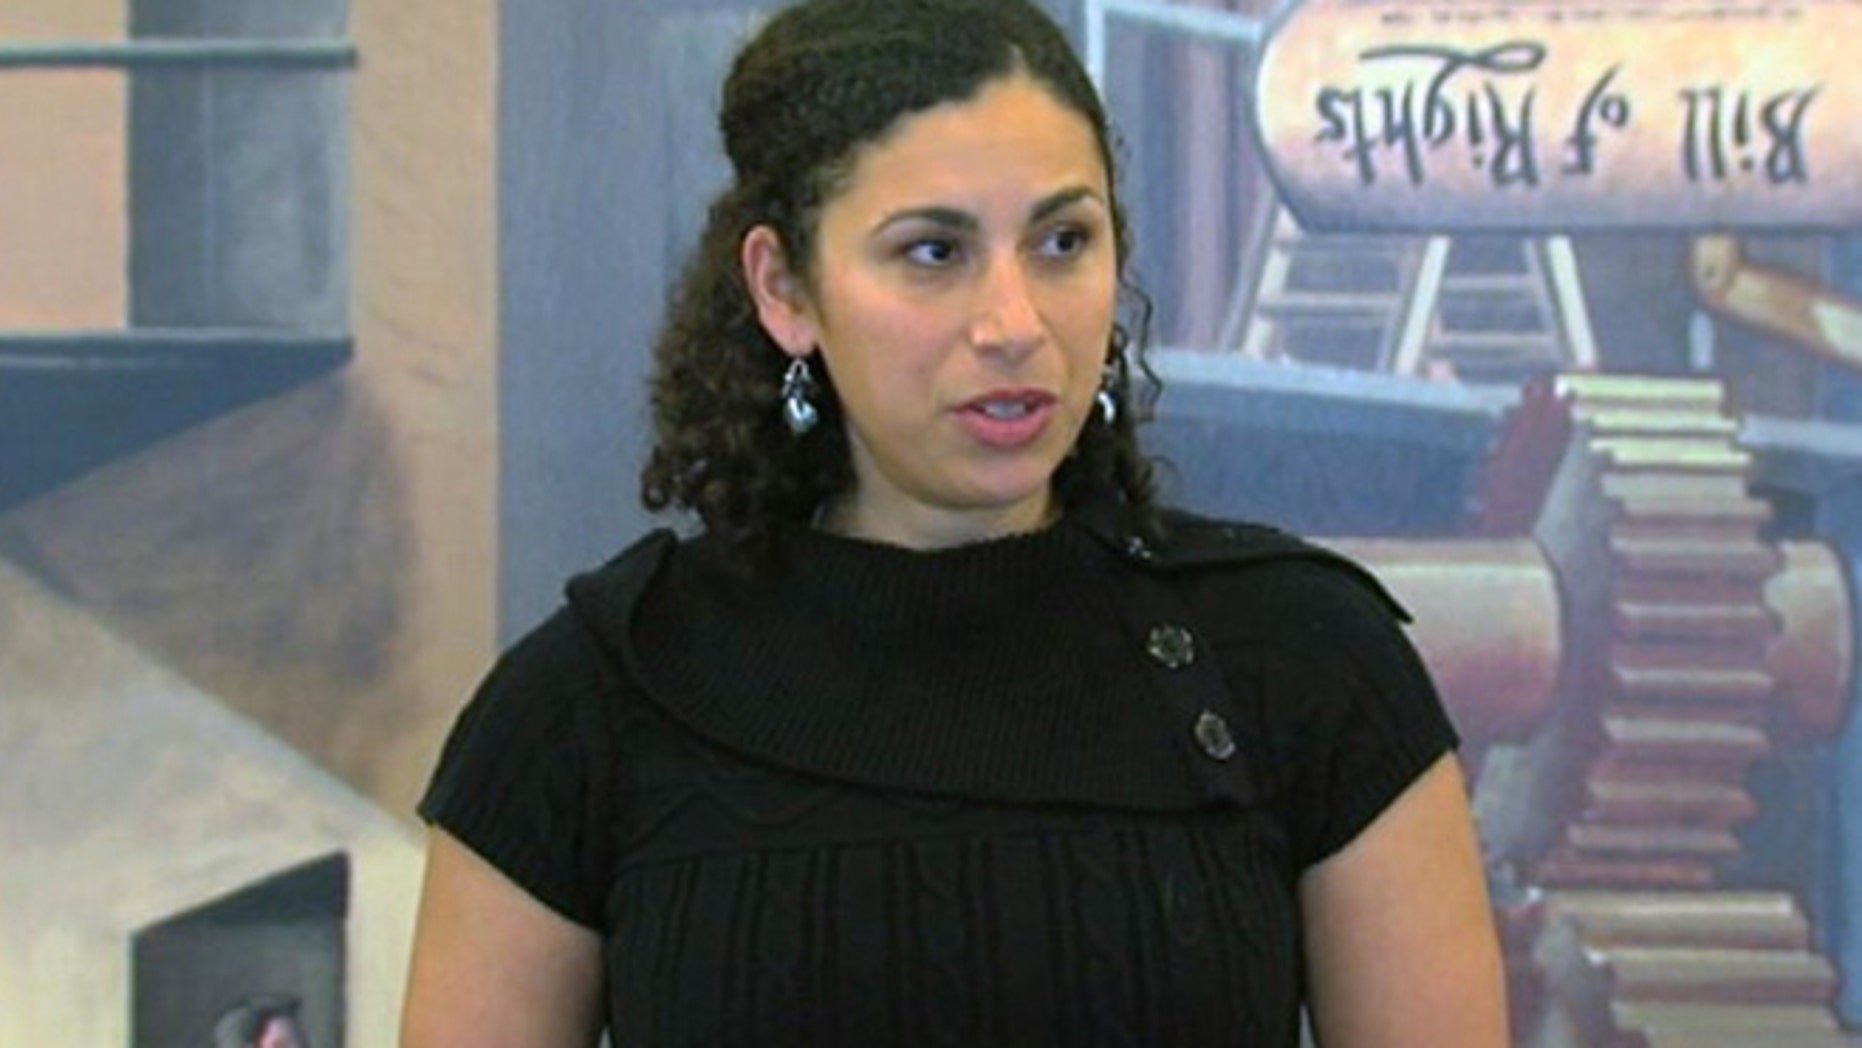 Shoshana Hebshi says she was ordered to remove her clothes, bend over and cough while she was searched.